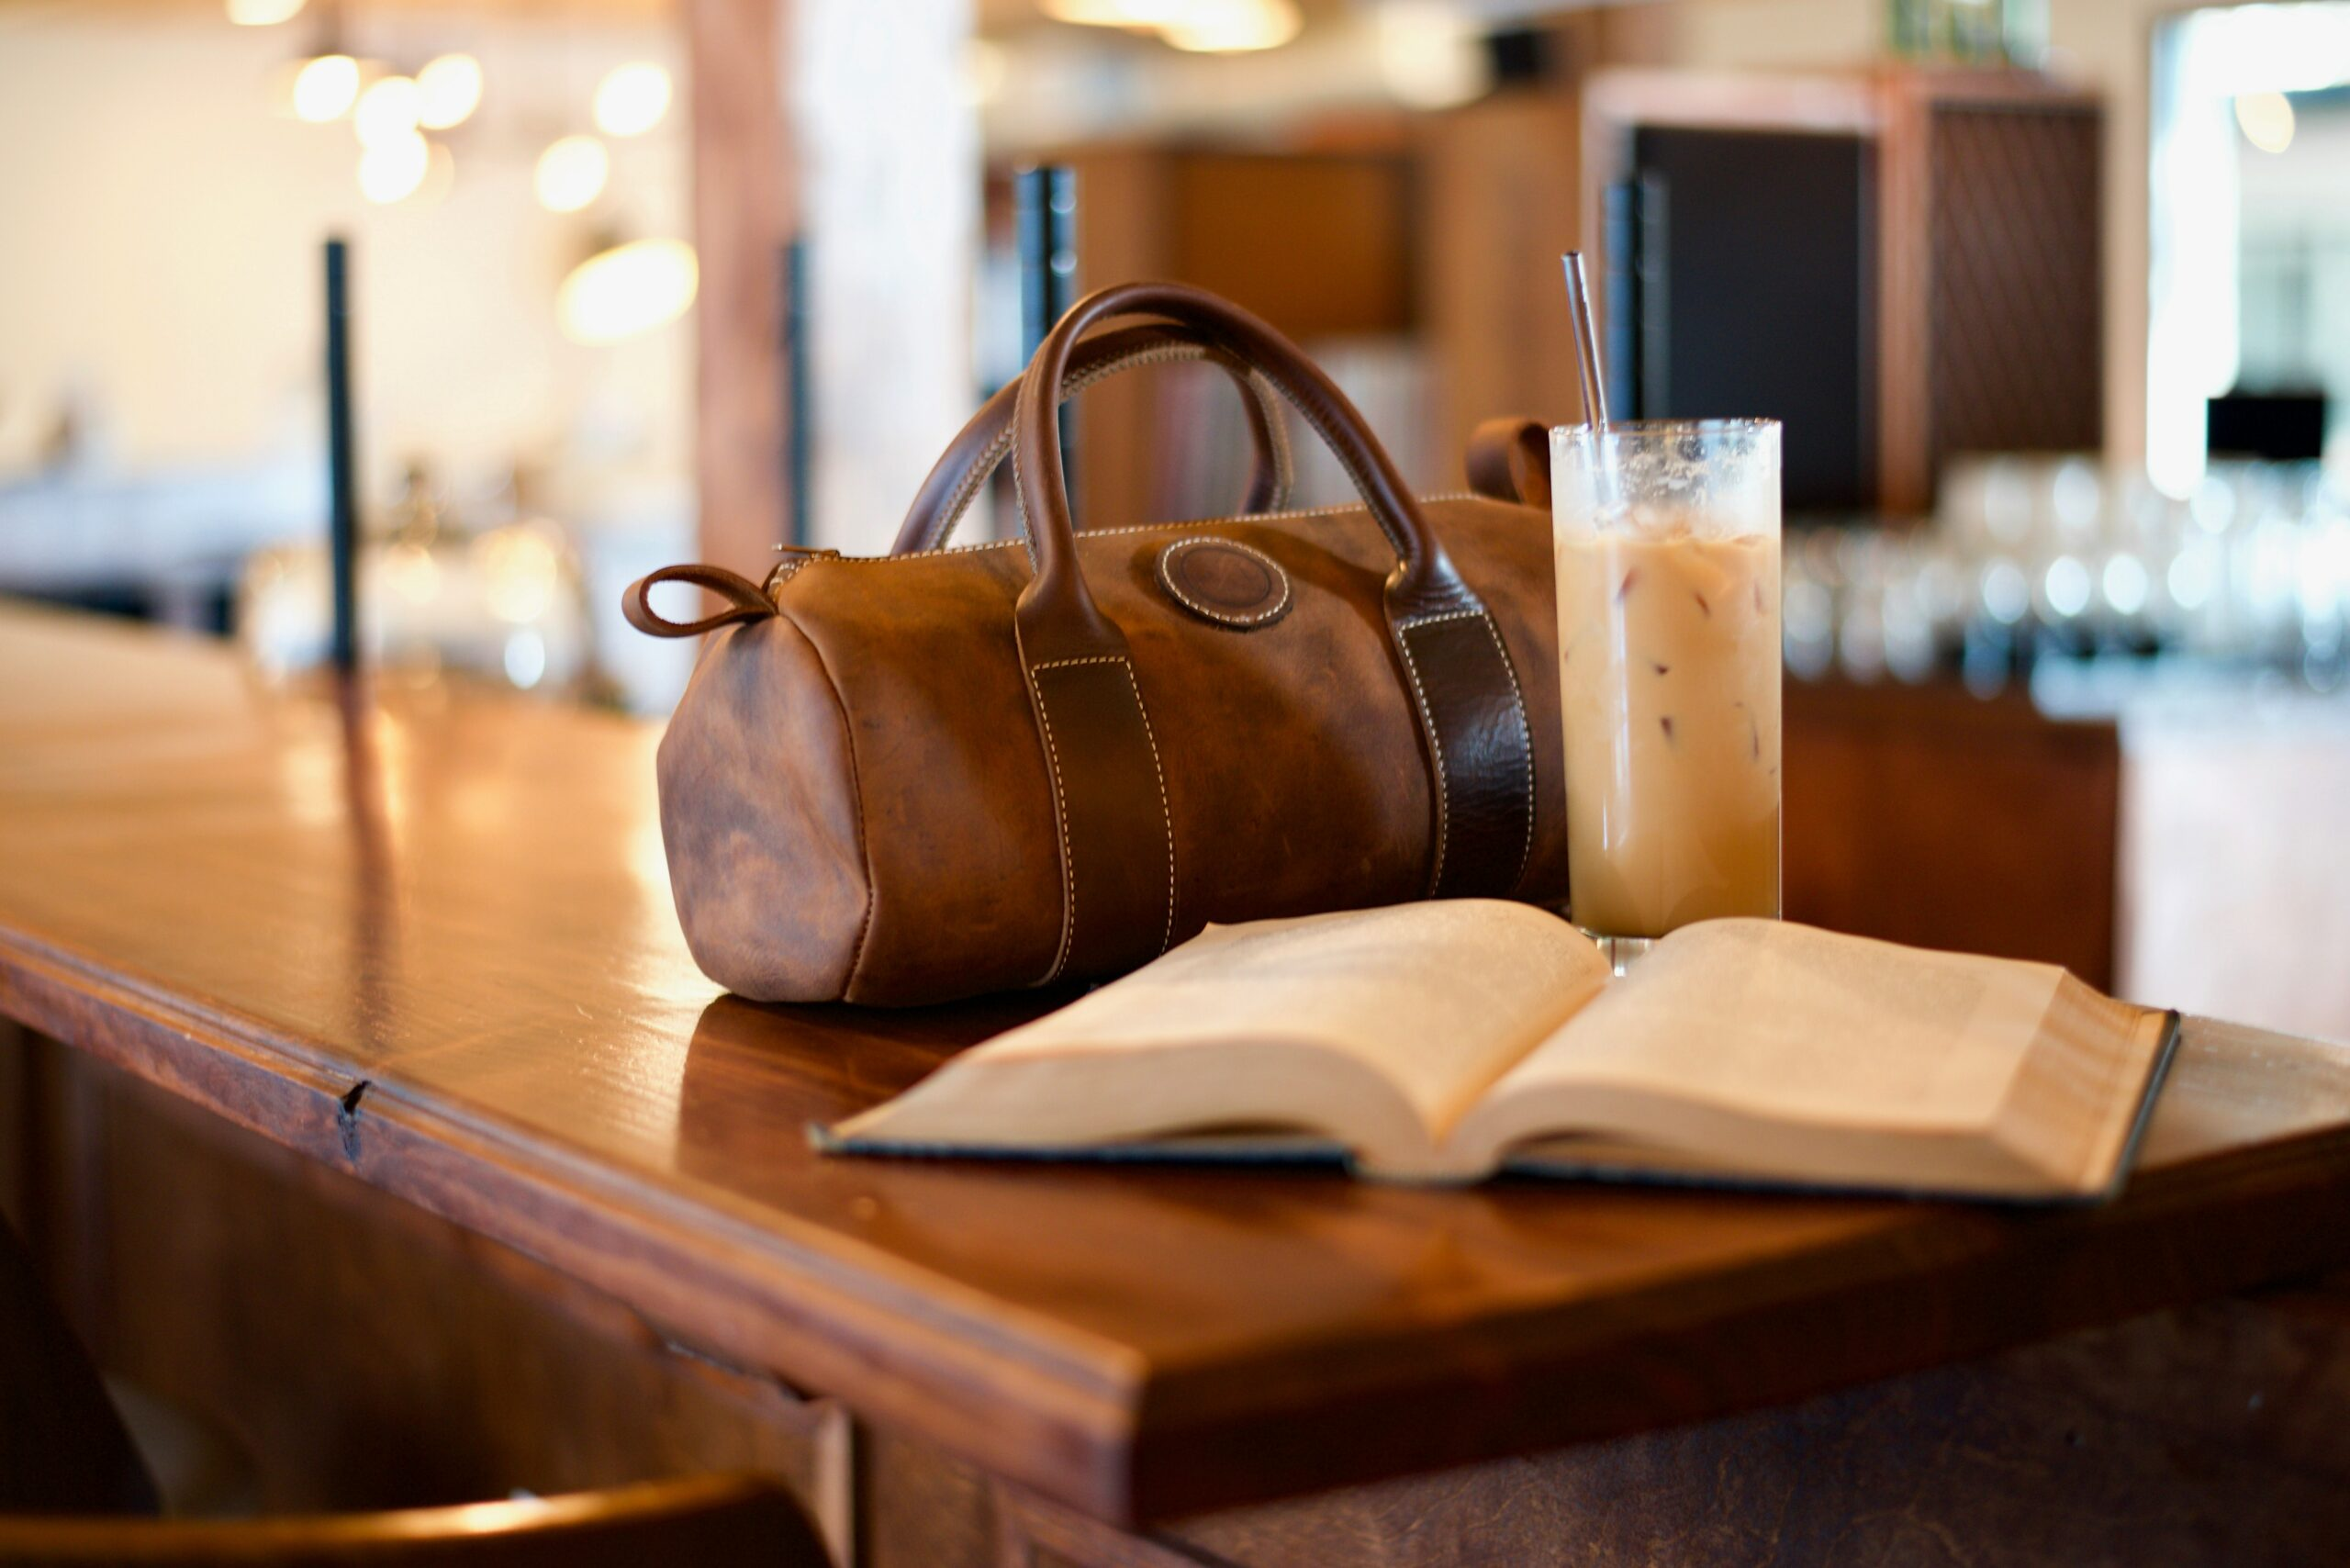 a duffle bag beside a book and iced coffee